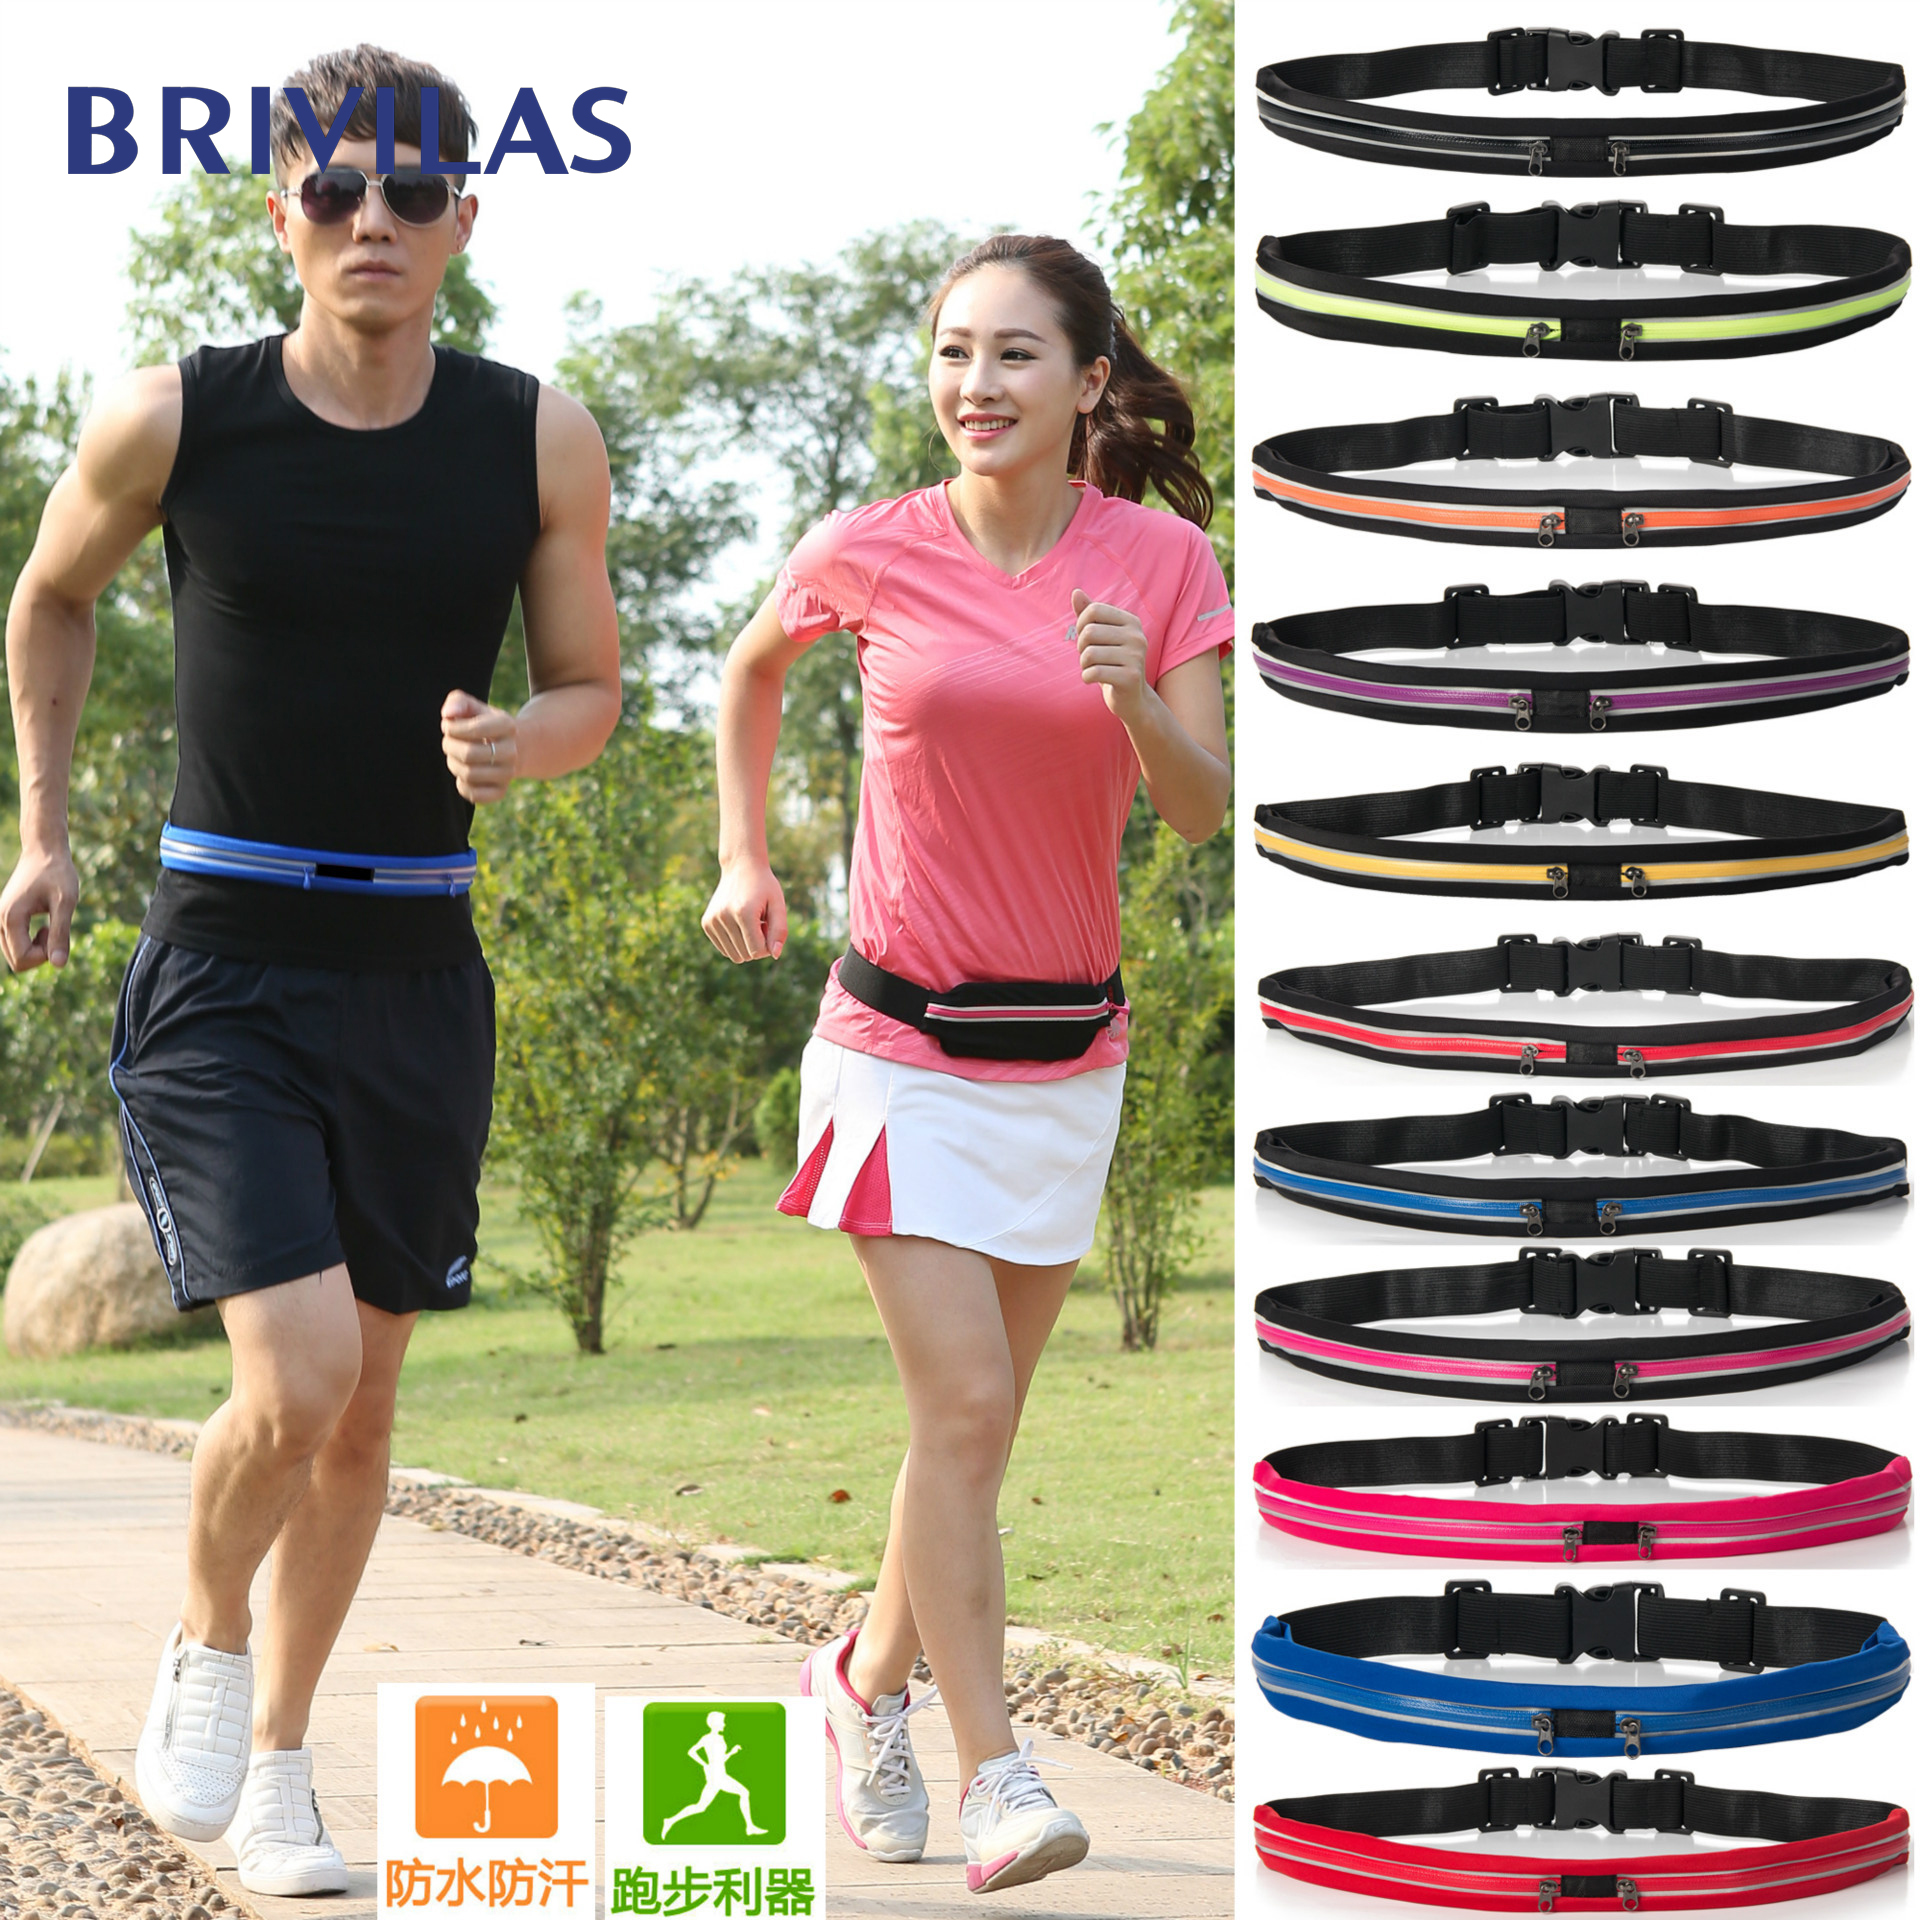 Brivilas Sports Belt Bag Outdoor Run Anti-theft Cycling Purse Women Men High Quality Phone Pocket Zip Portable Waist Bag Mobile